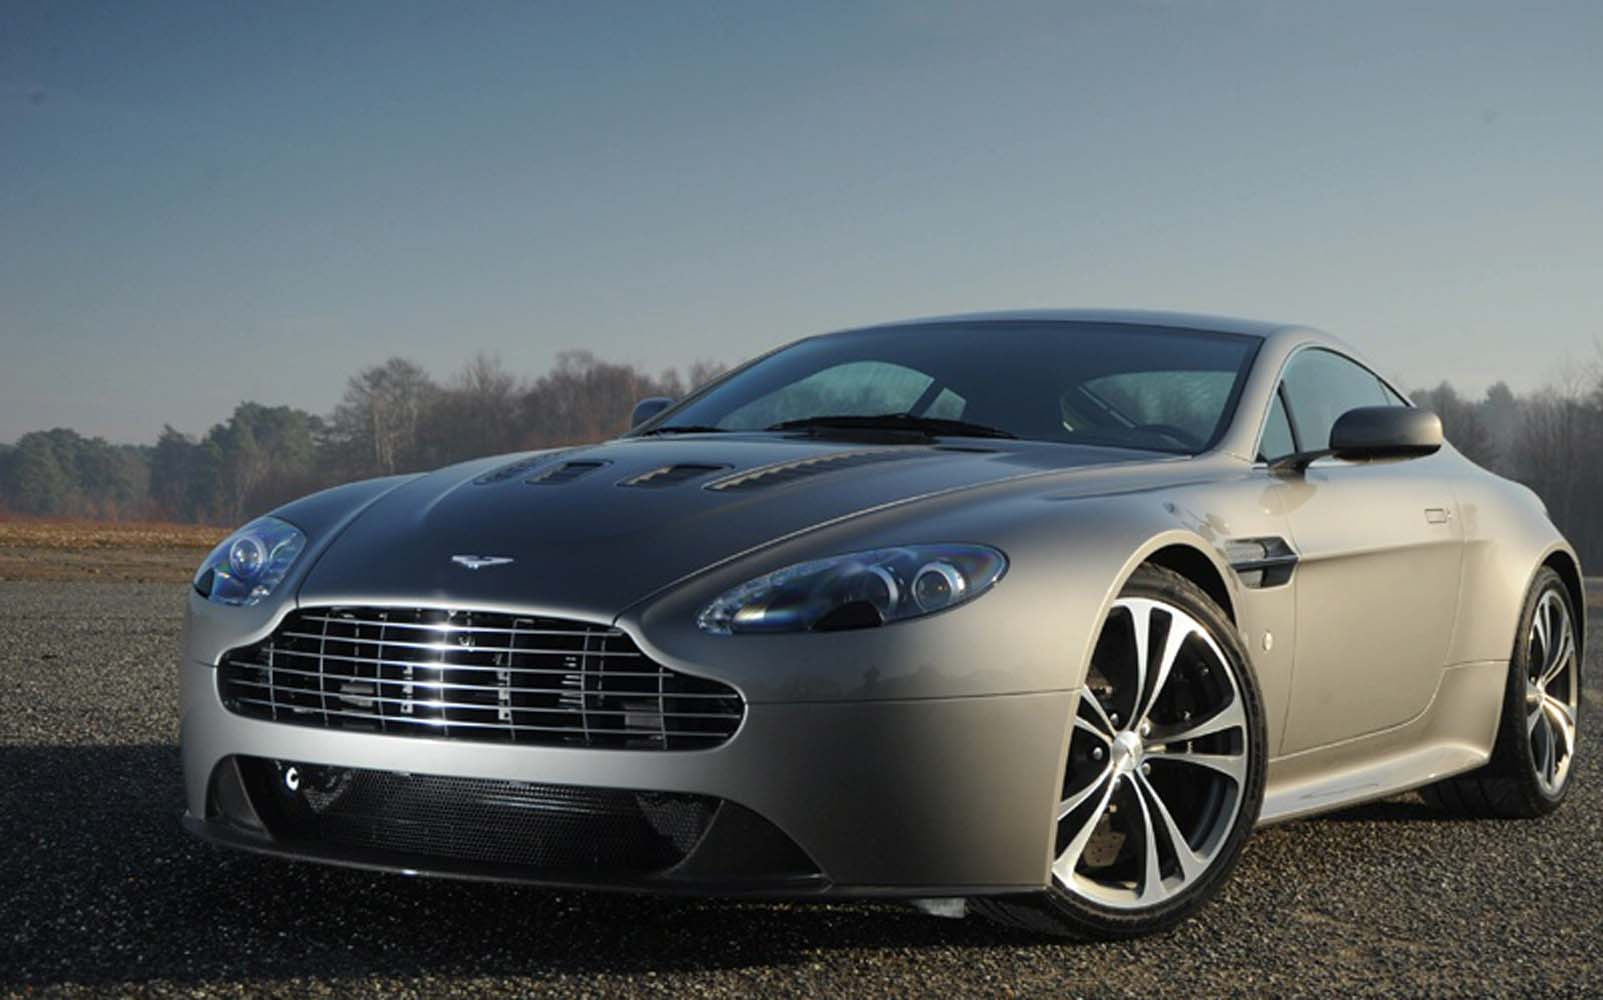 vantage - Automobile Wallpapers in, HD | Iphone | Android| Desktop 20